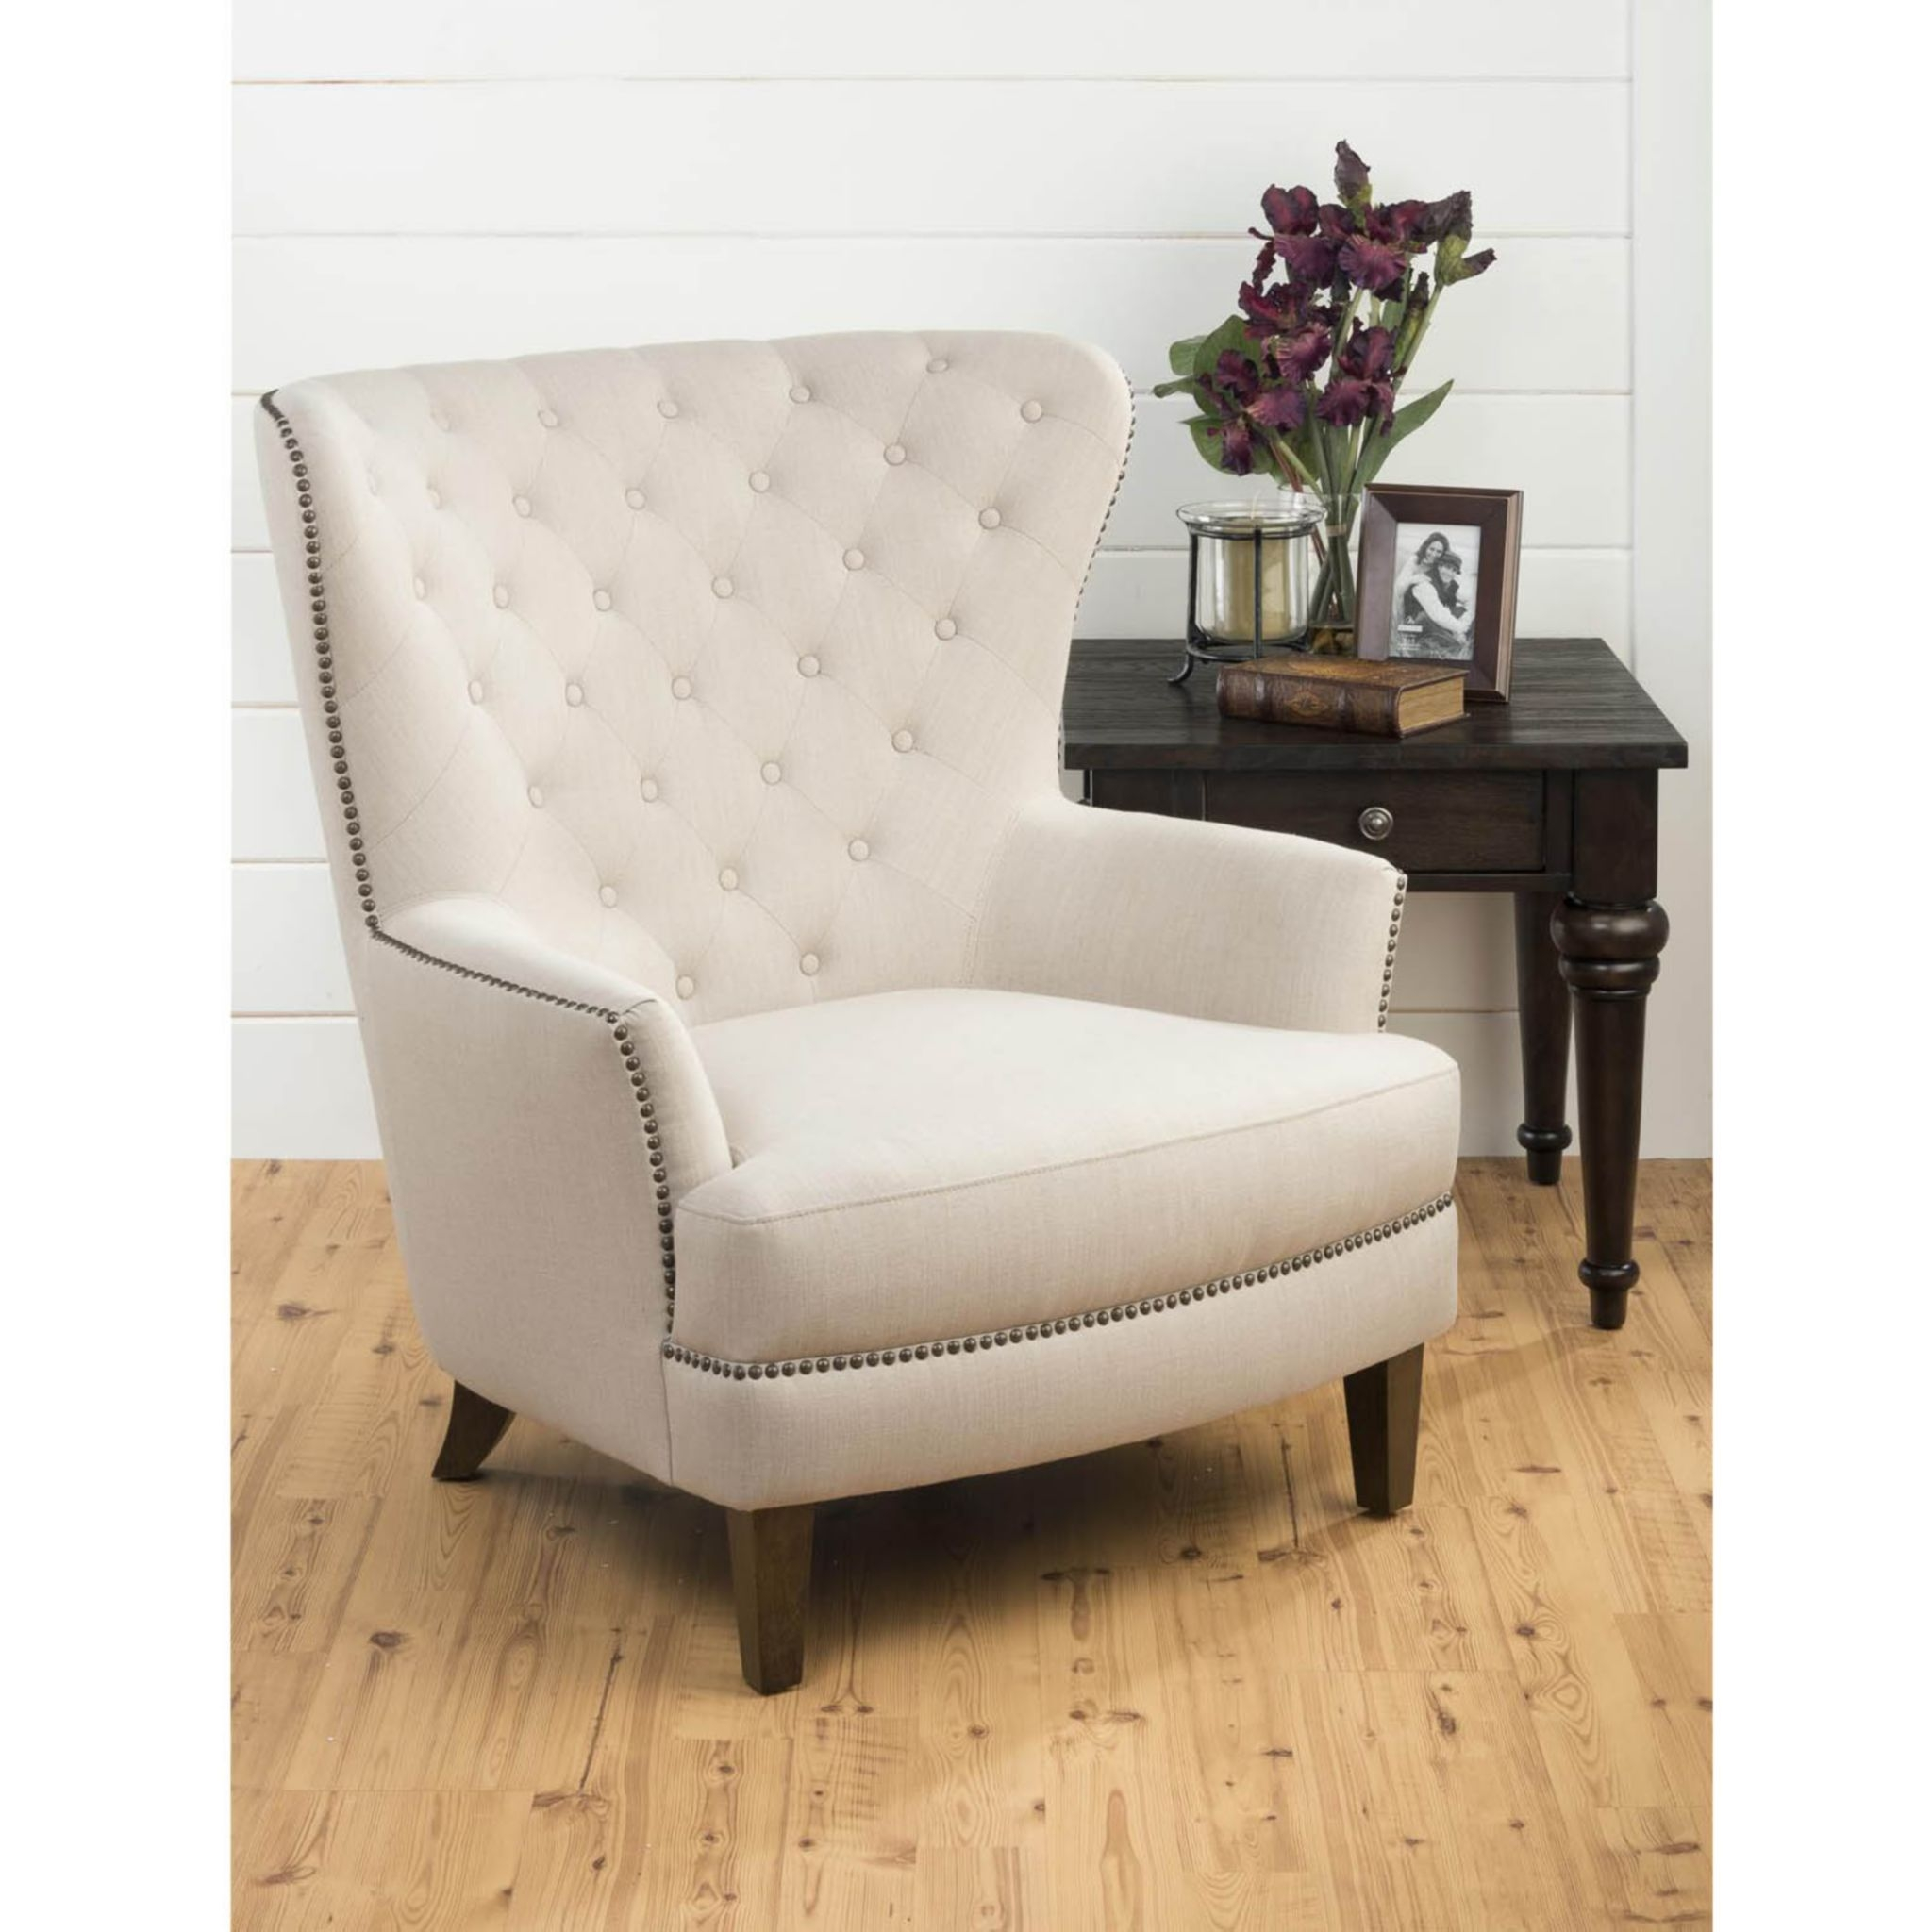 Ivory arm chairs  sc 1 st  Foter & Ivory Arm Chairs - Foter